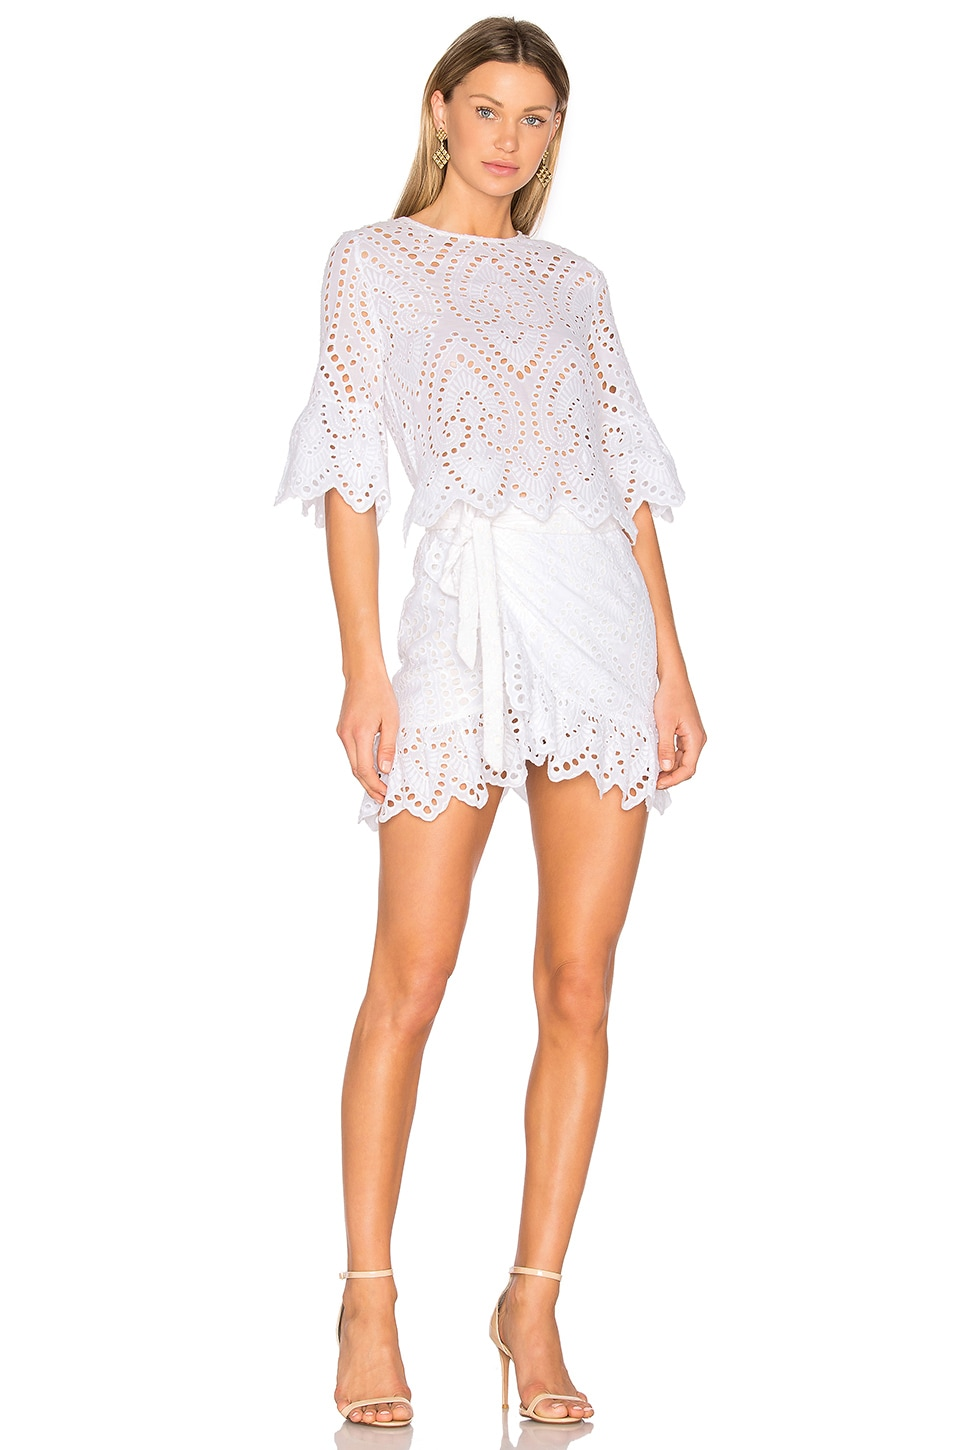 Winona Australia Valerie Wrap Dress in White